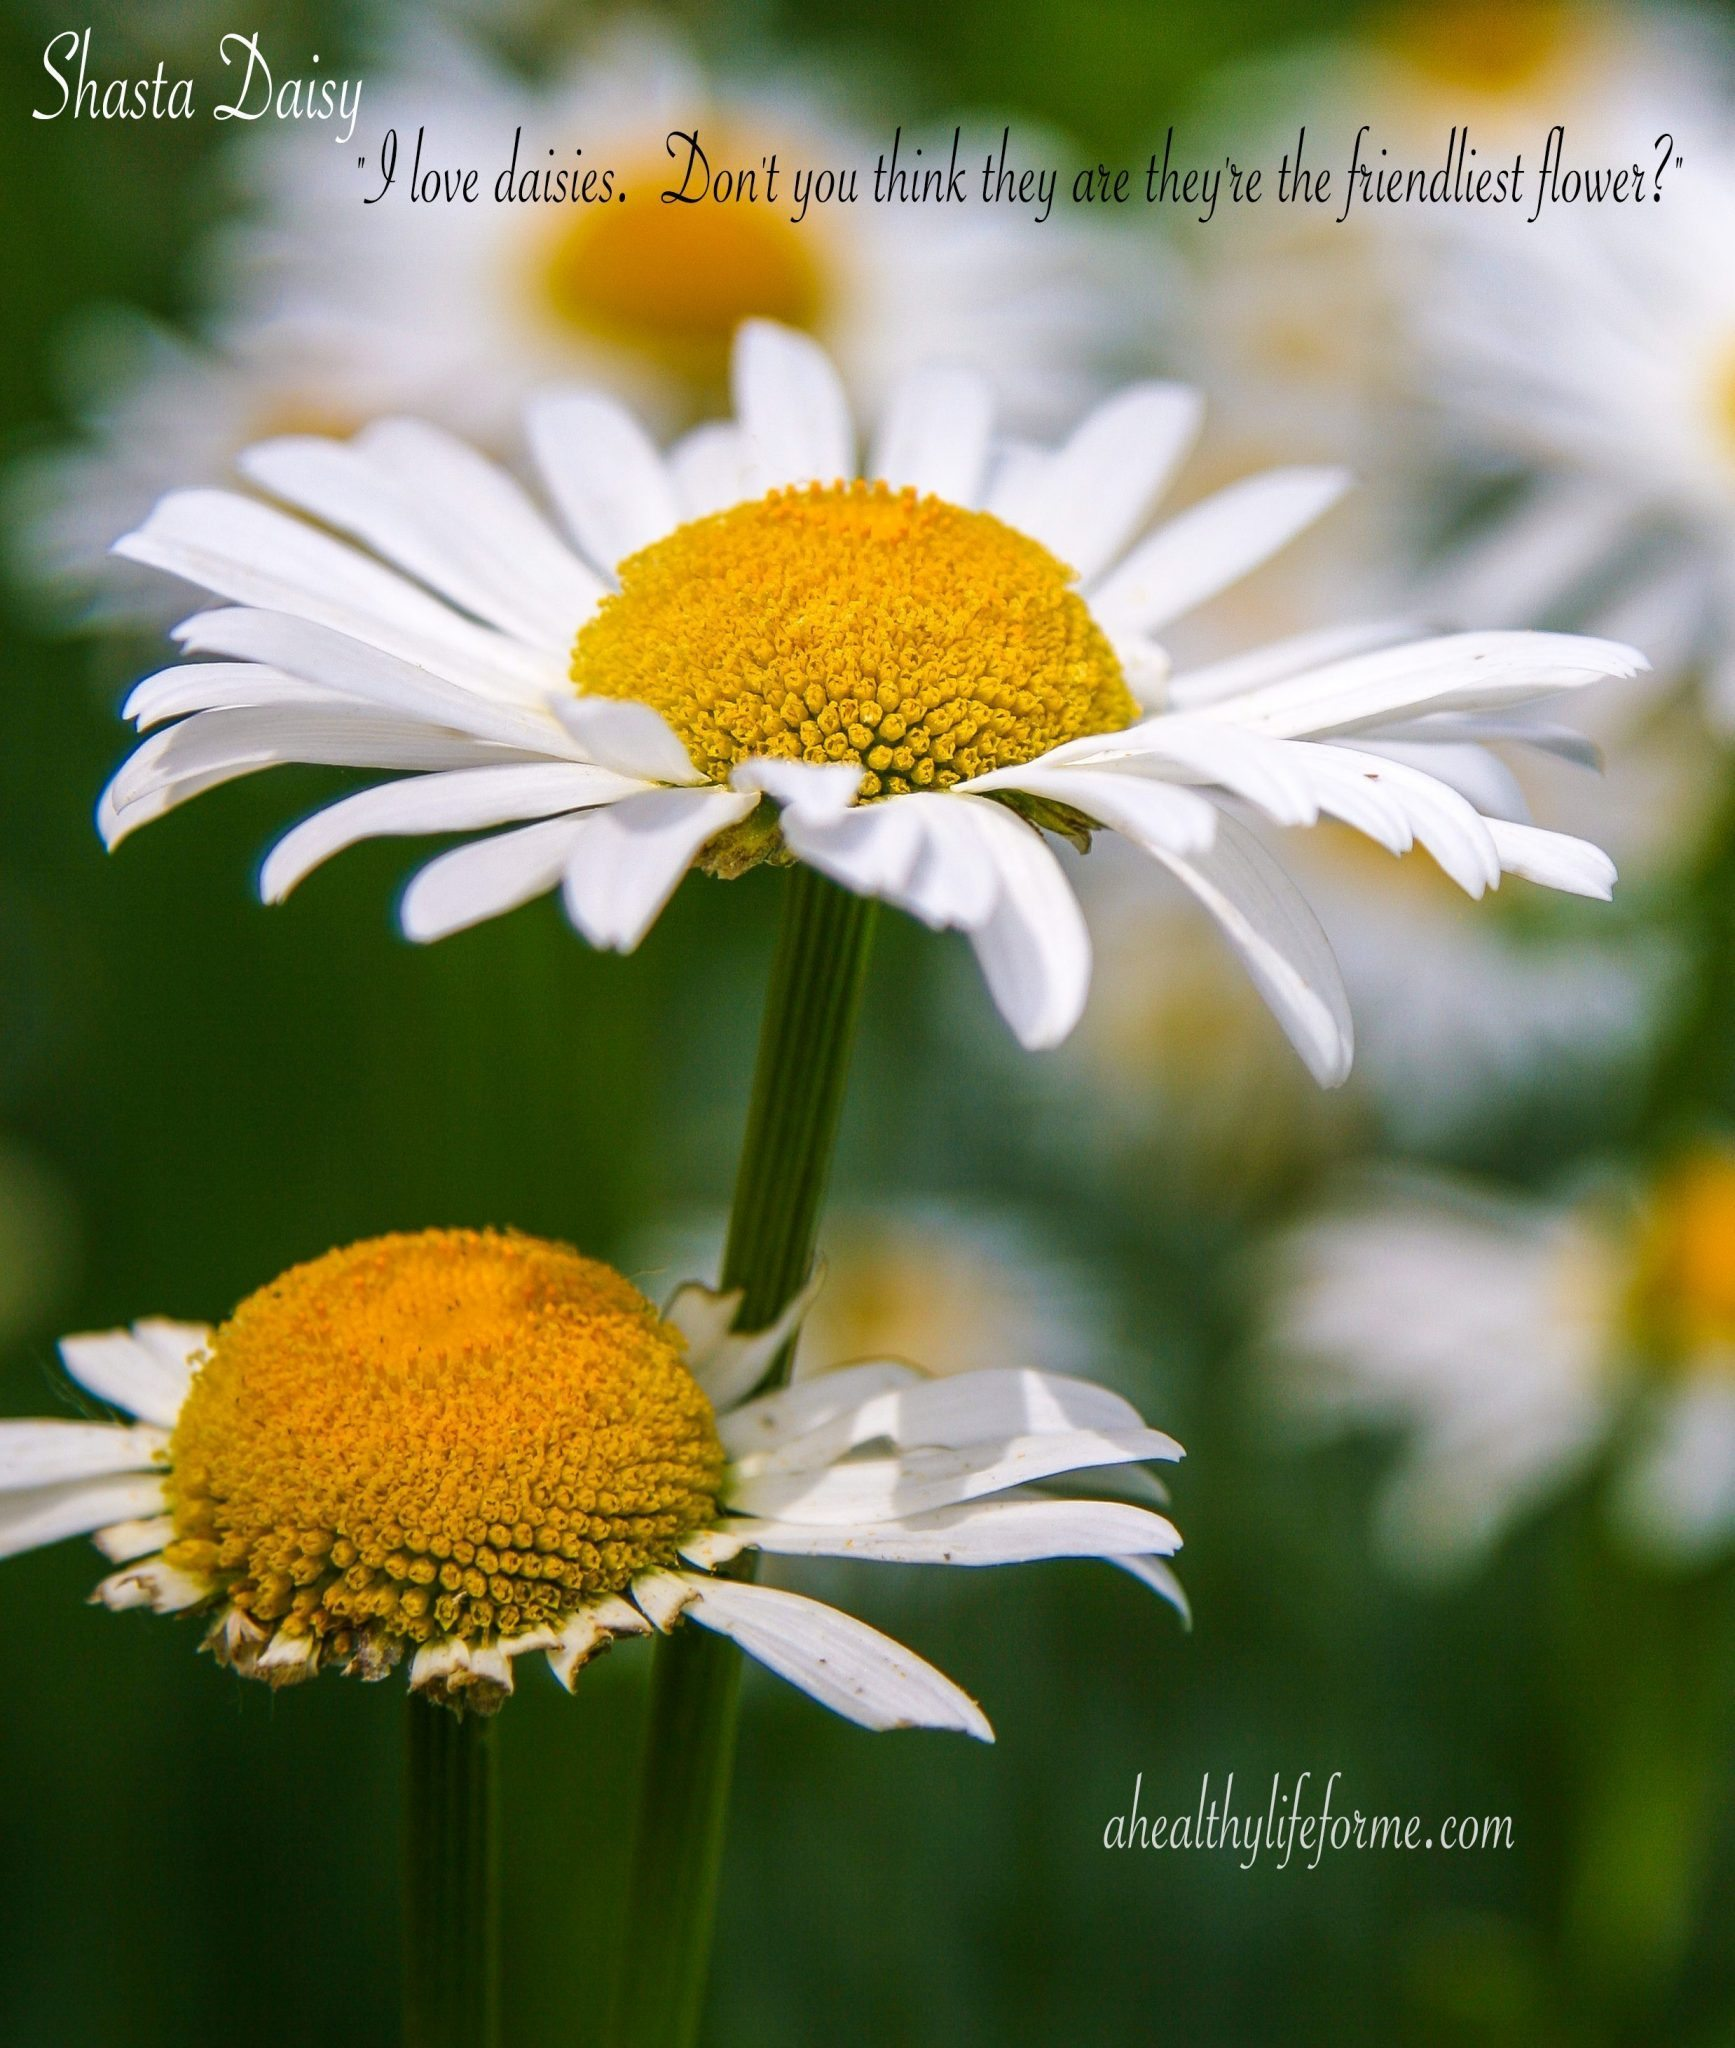 How to grow shasta daisy a healthy life for me when we moved into our home there was a flower bed in the back that was in a very shady part of the yard where a clump of shasta daisies leucanthemum x izmirmasajfo